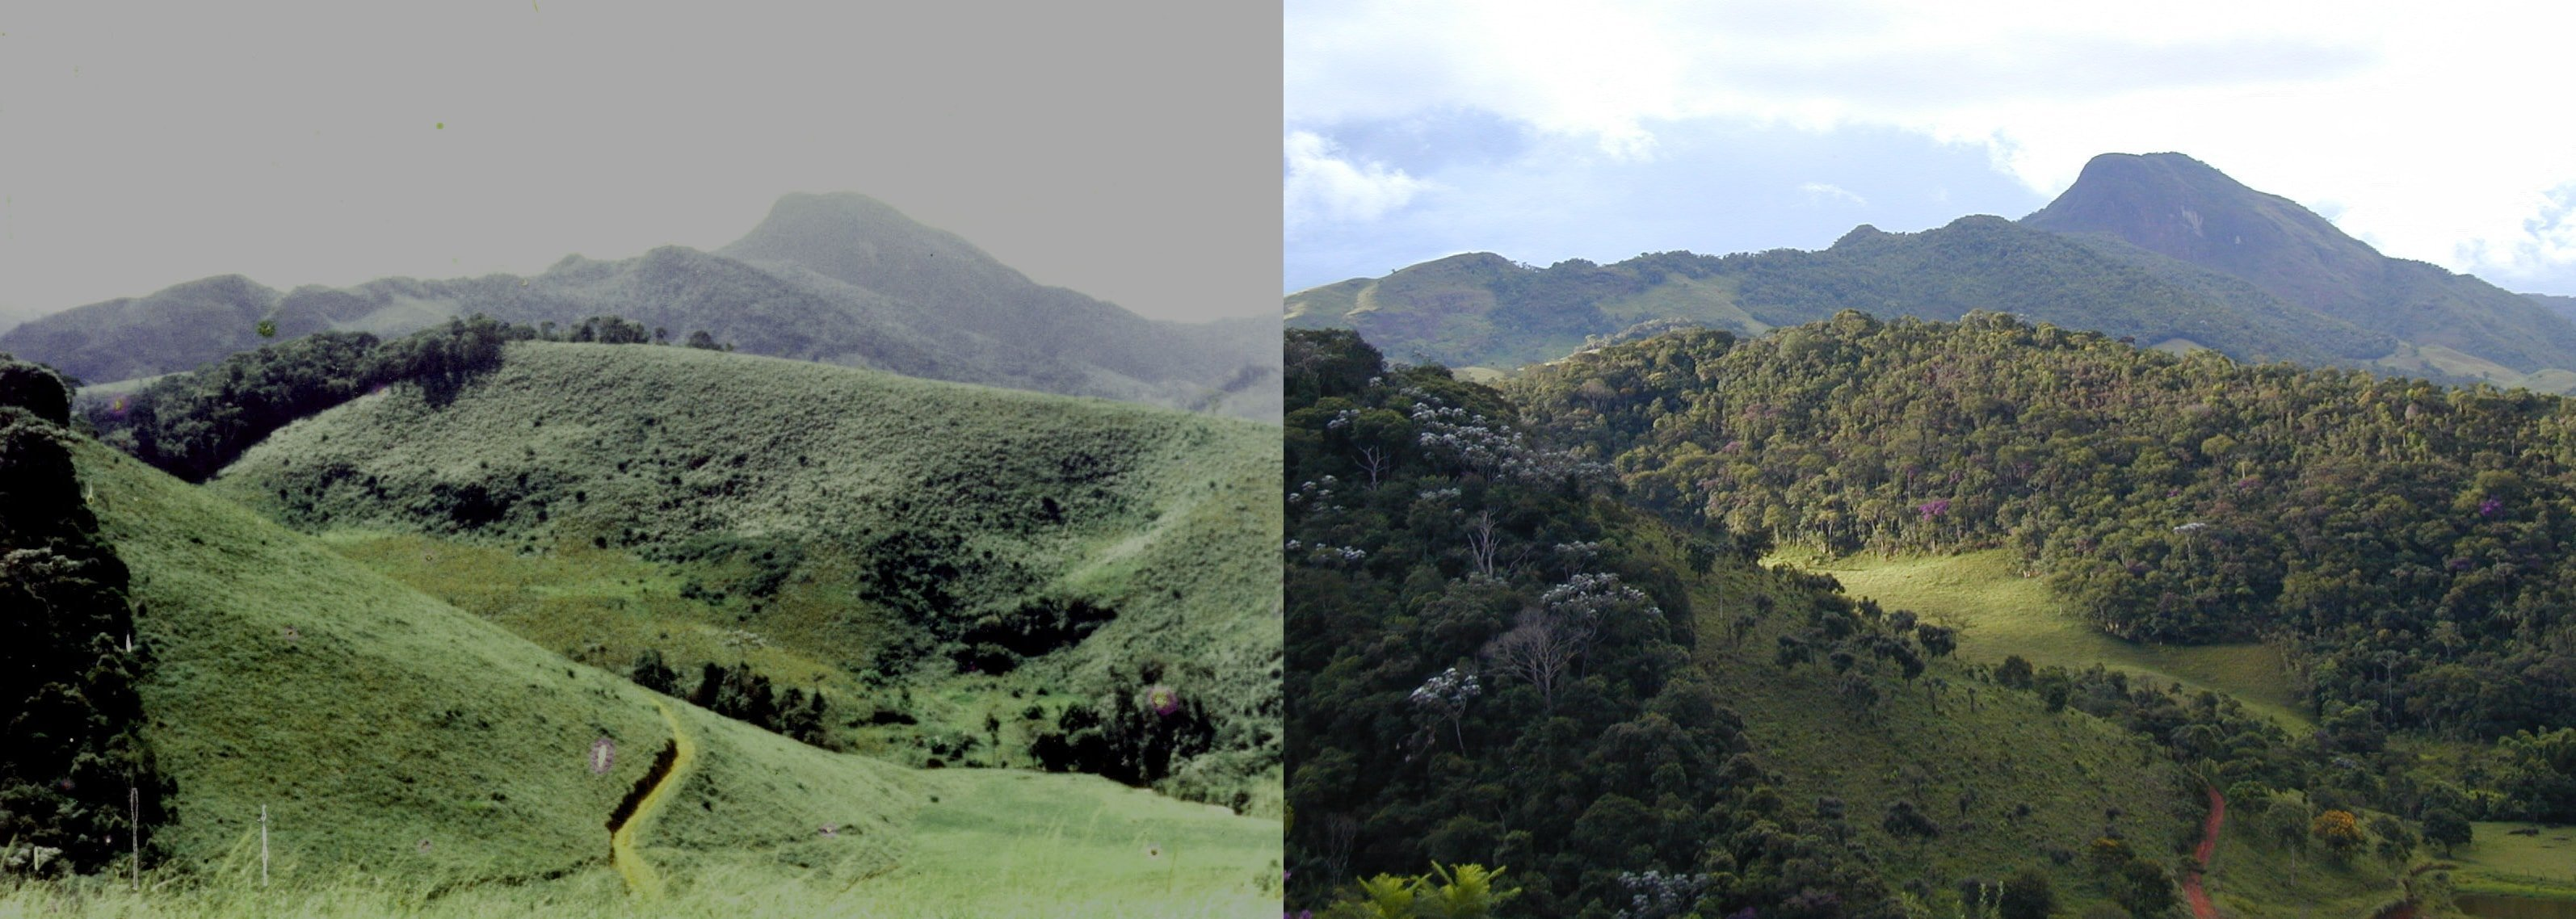 two images compare before and after reforestation at iracambi